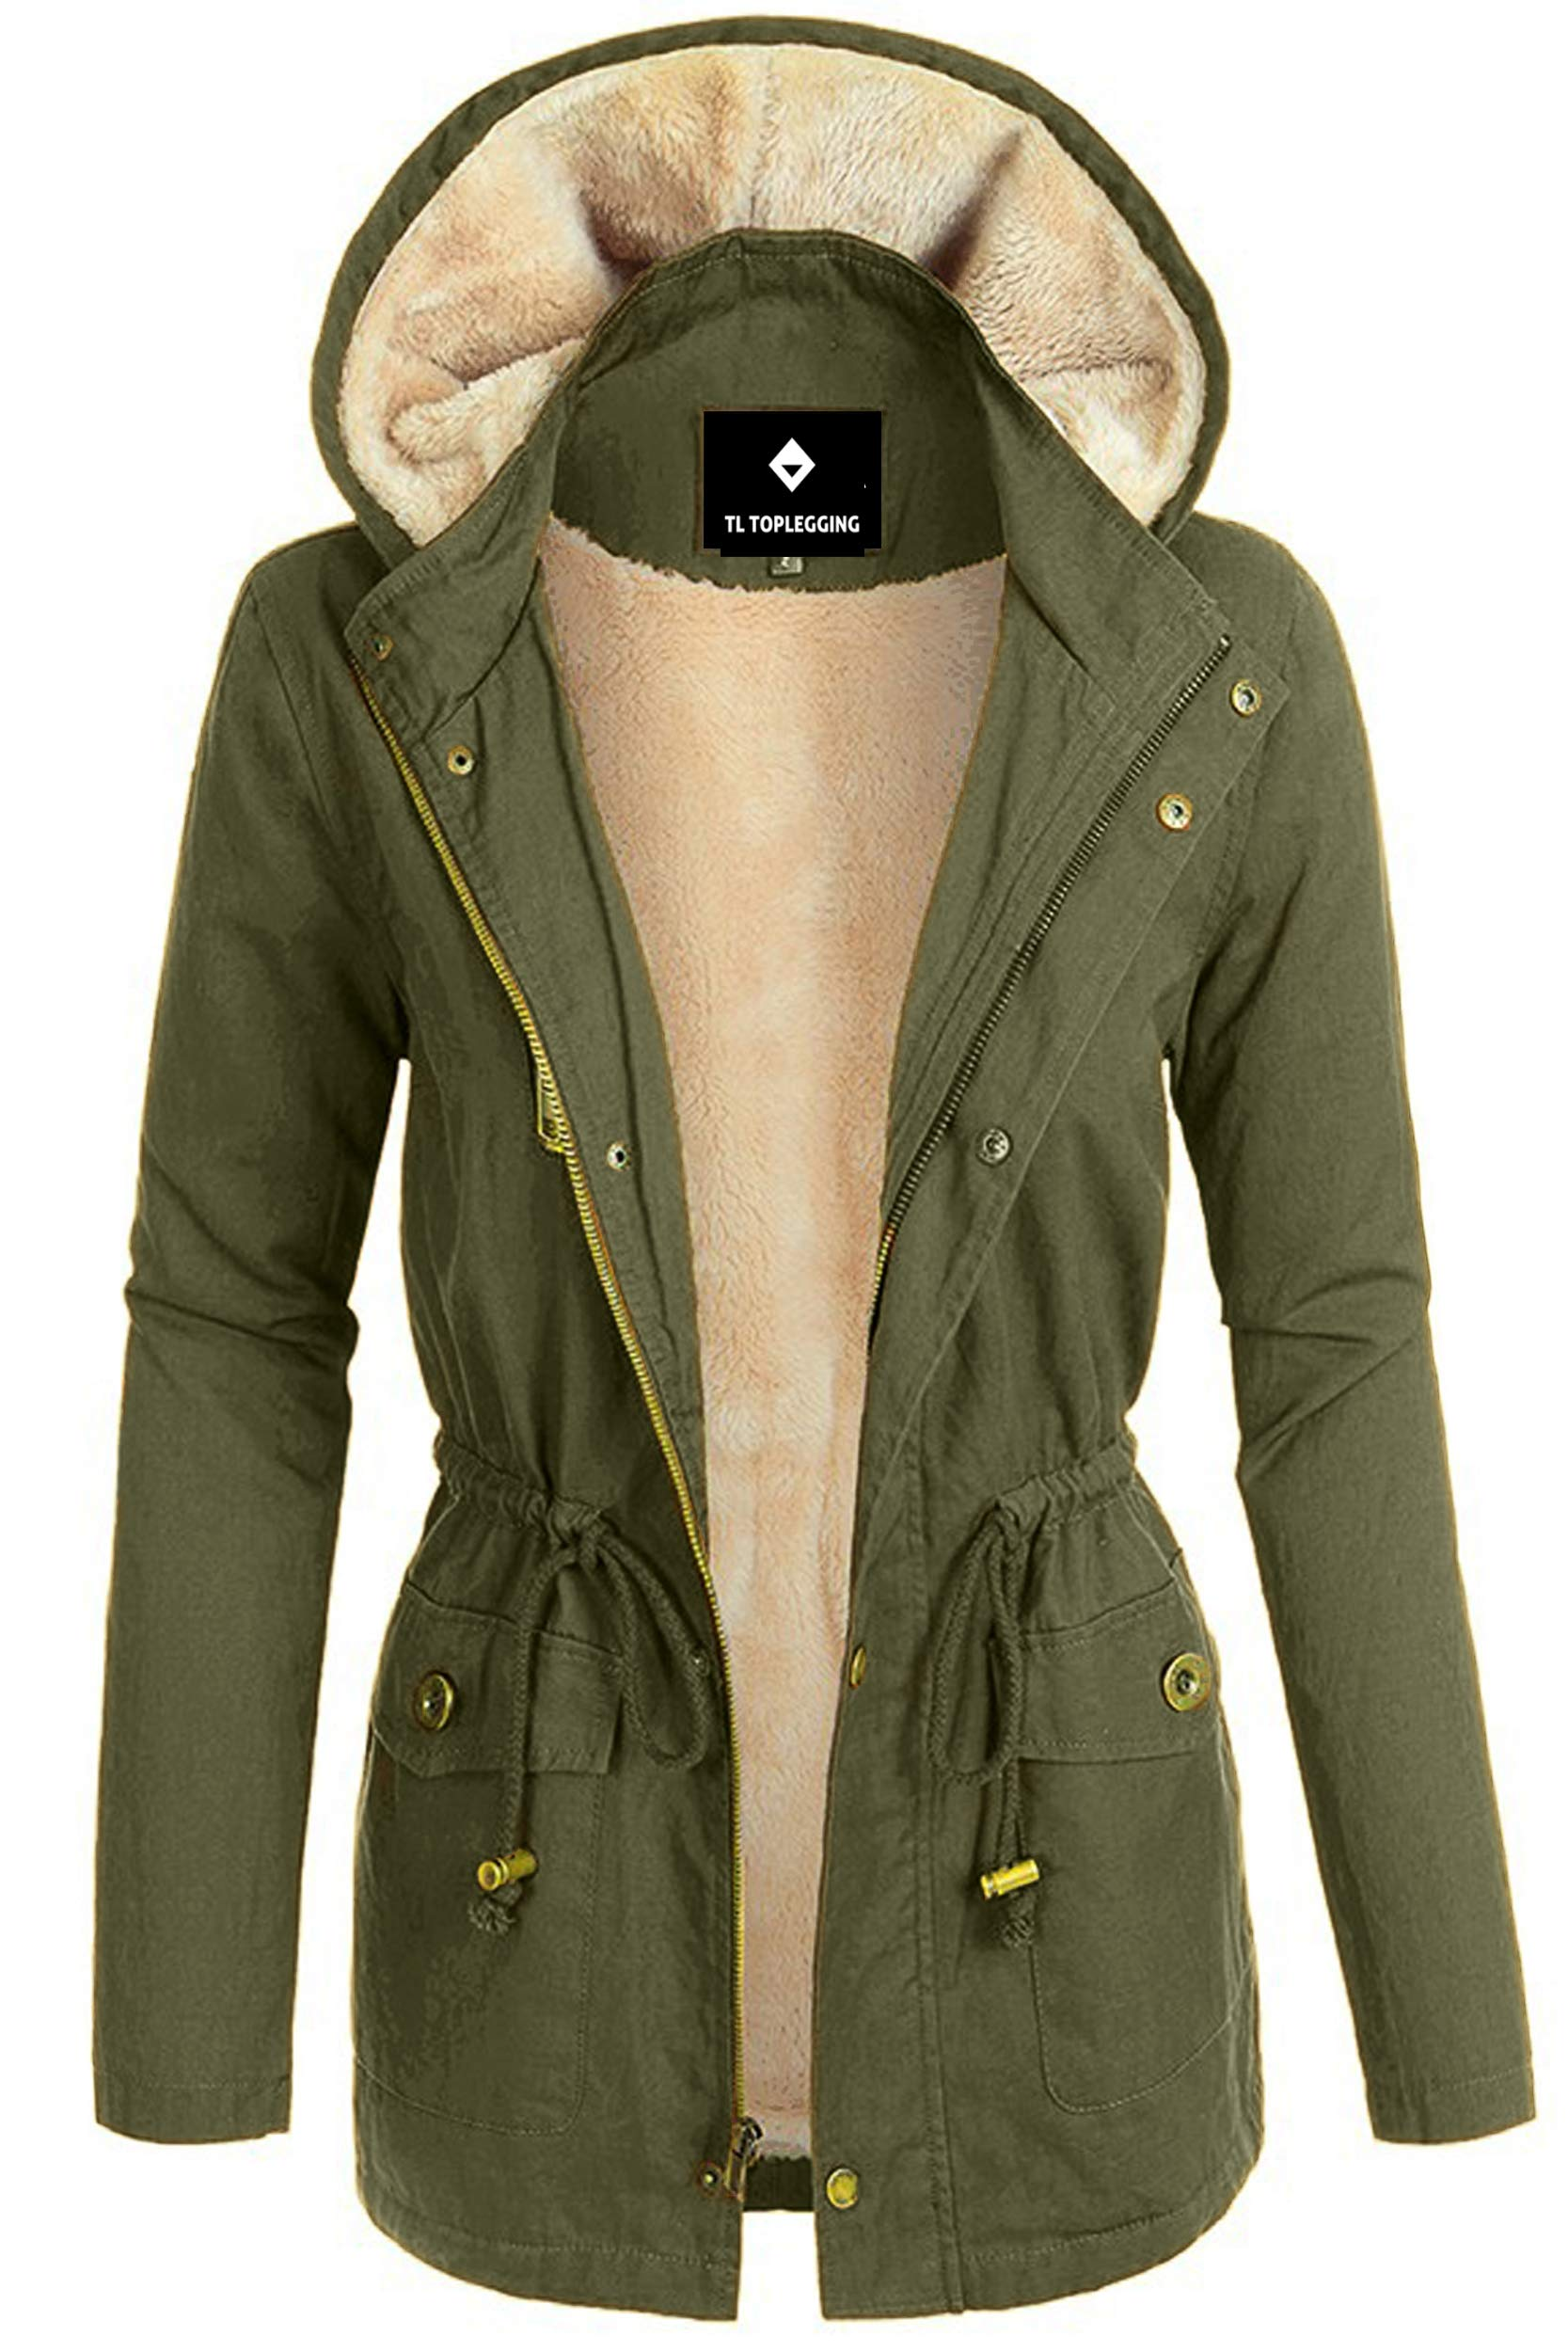 TOP LEGGING TL Women's Versatile Militray Anorak Parka Hoodie Jackets with Drawstring TGJ1085 Olive Large by TOP LEGGING